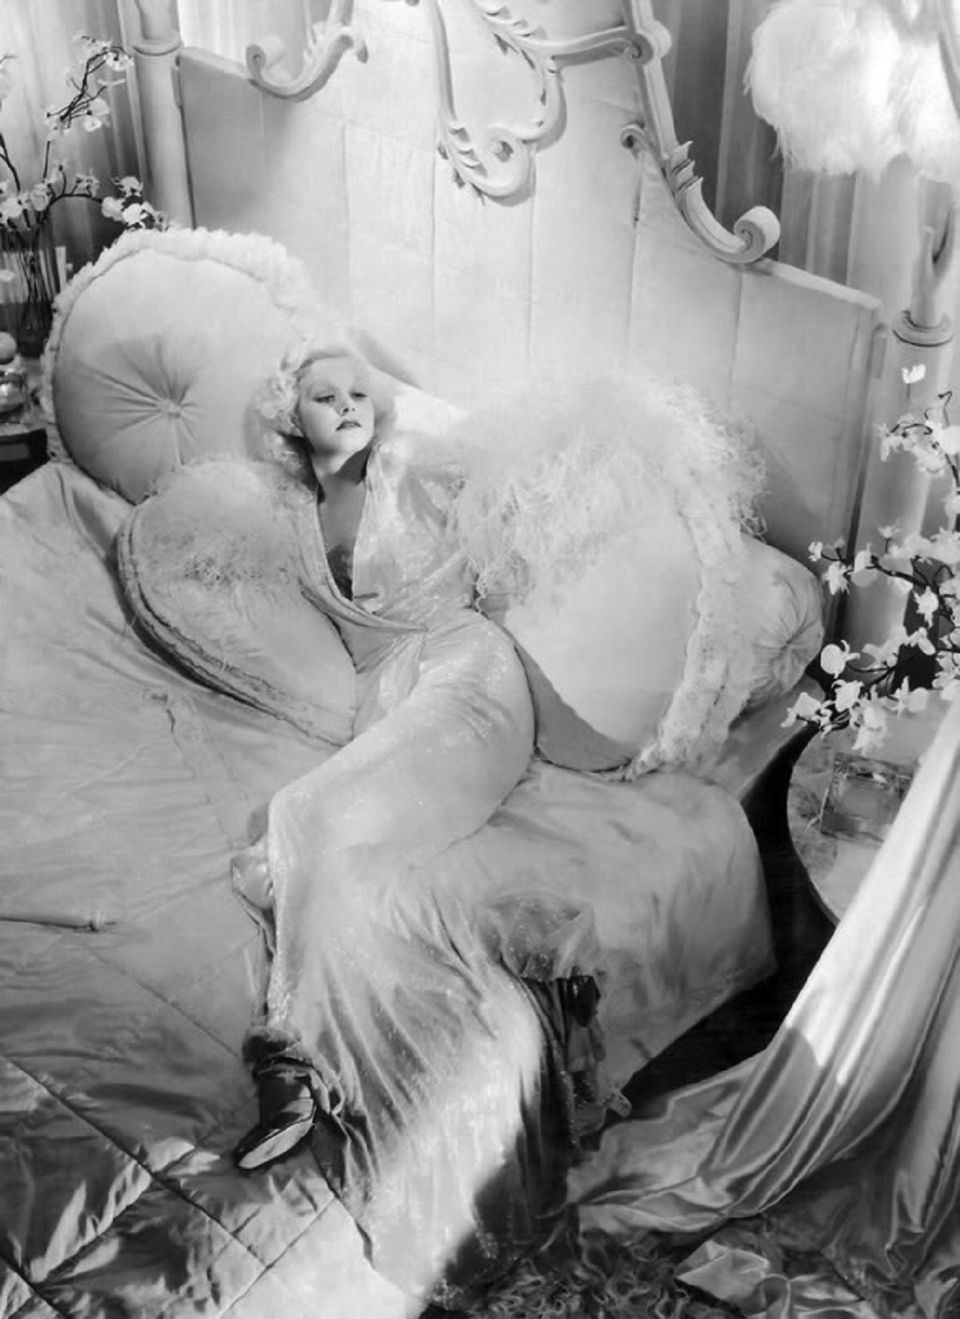 Jean Harlow in Dinner at Eight